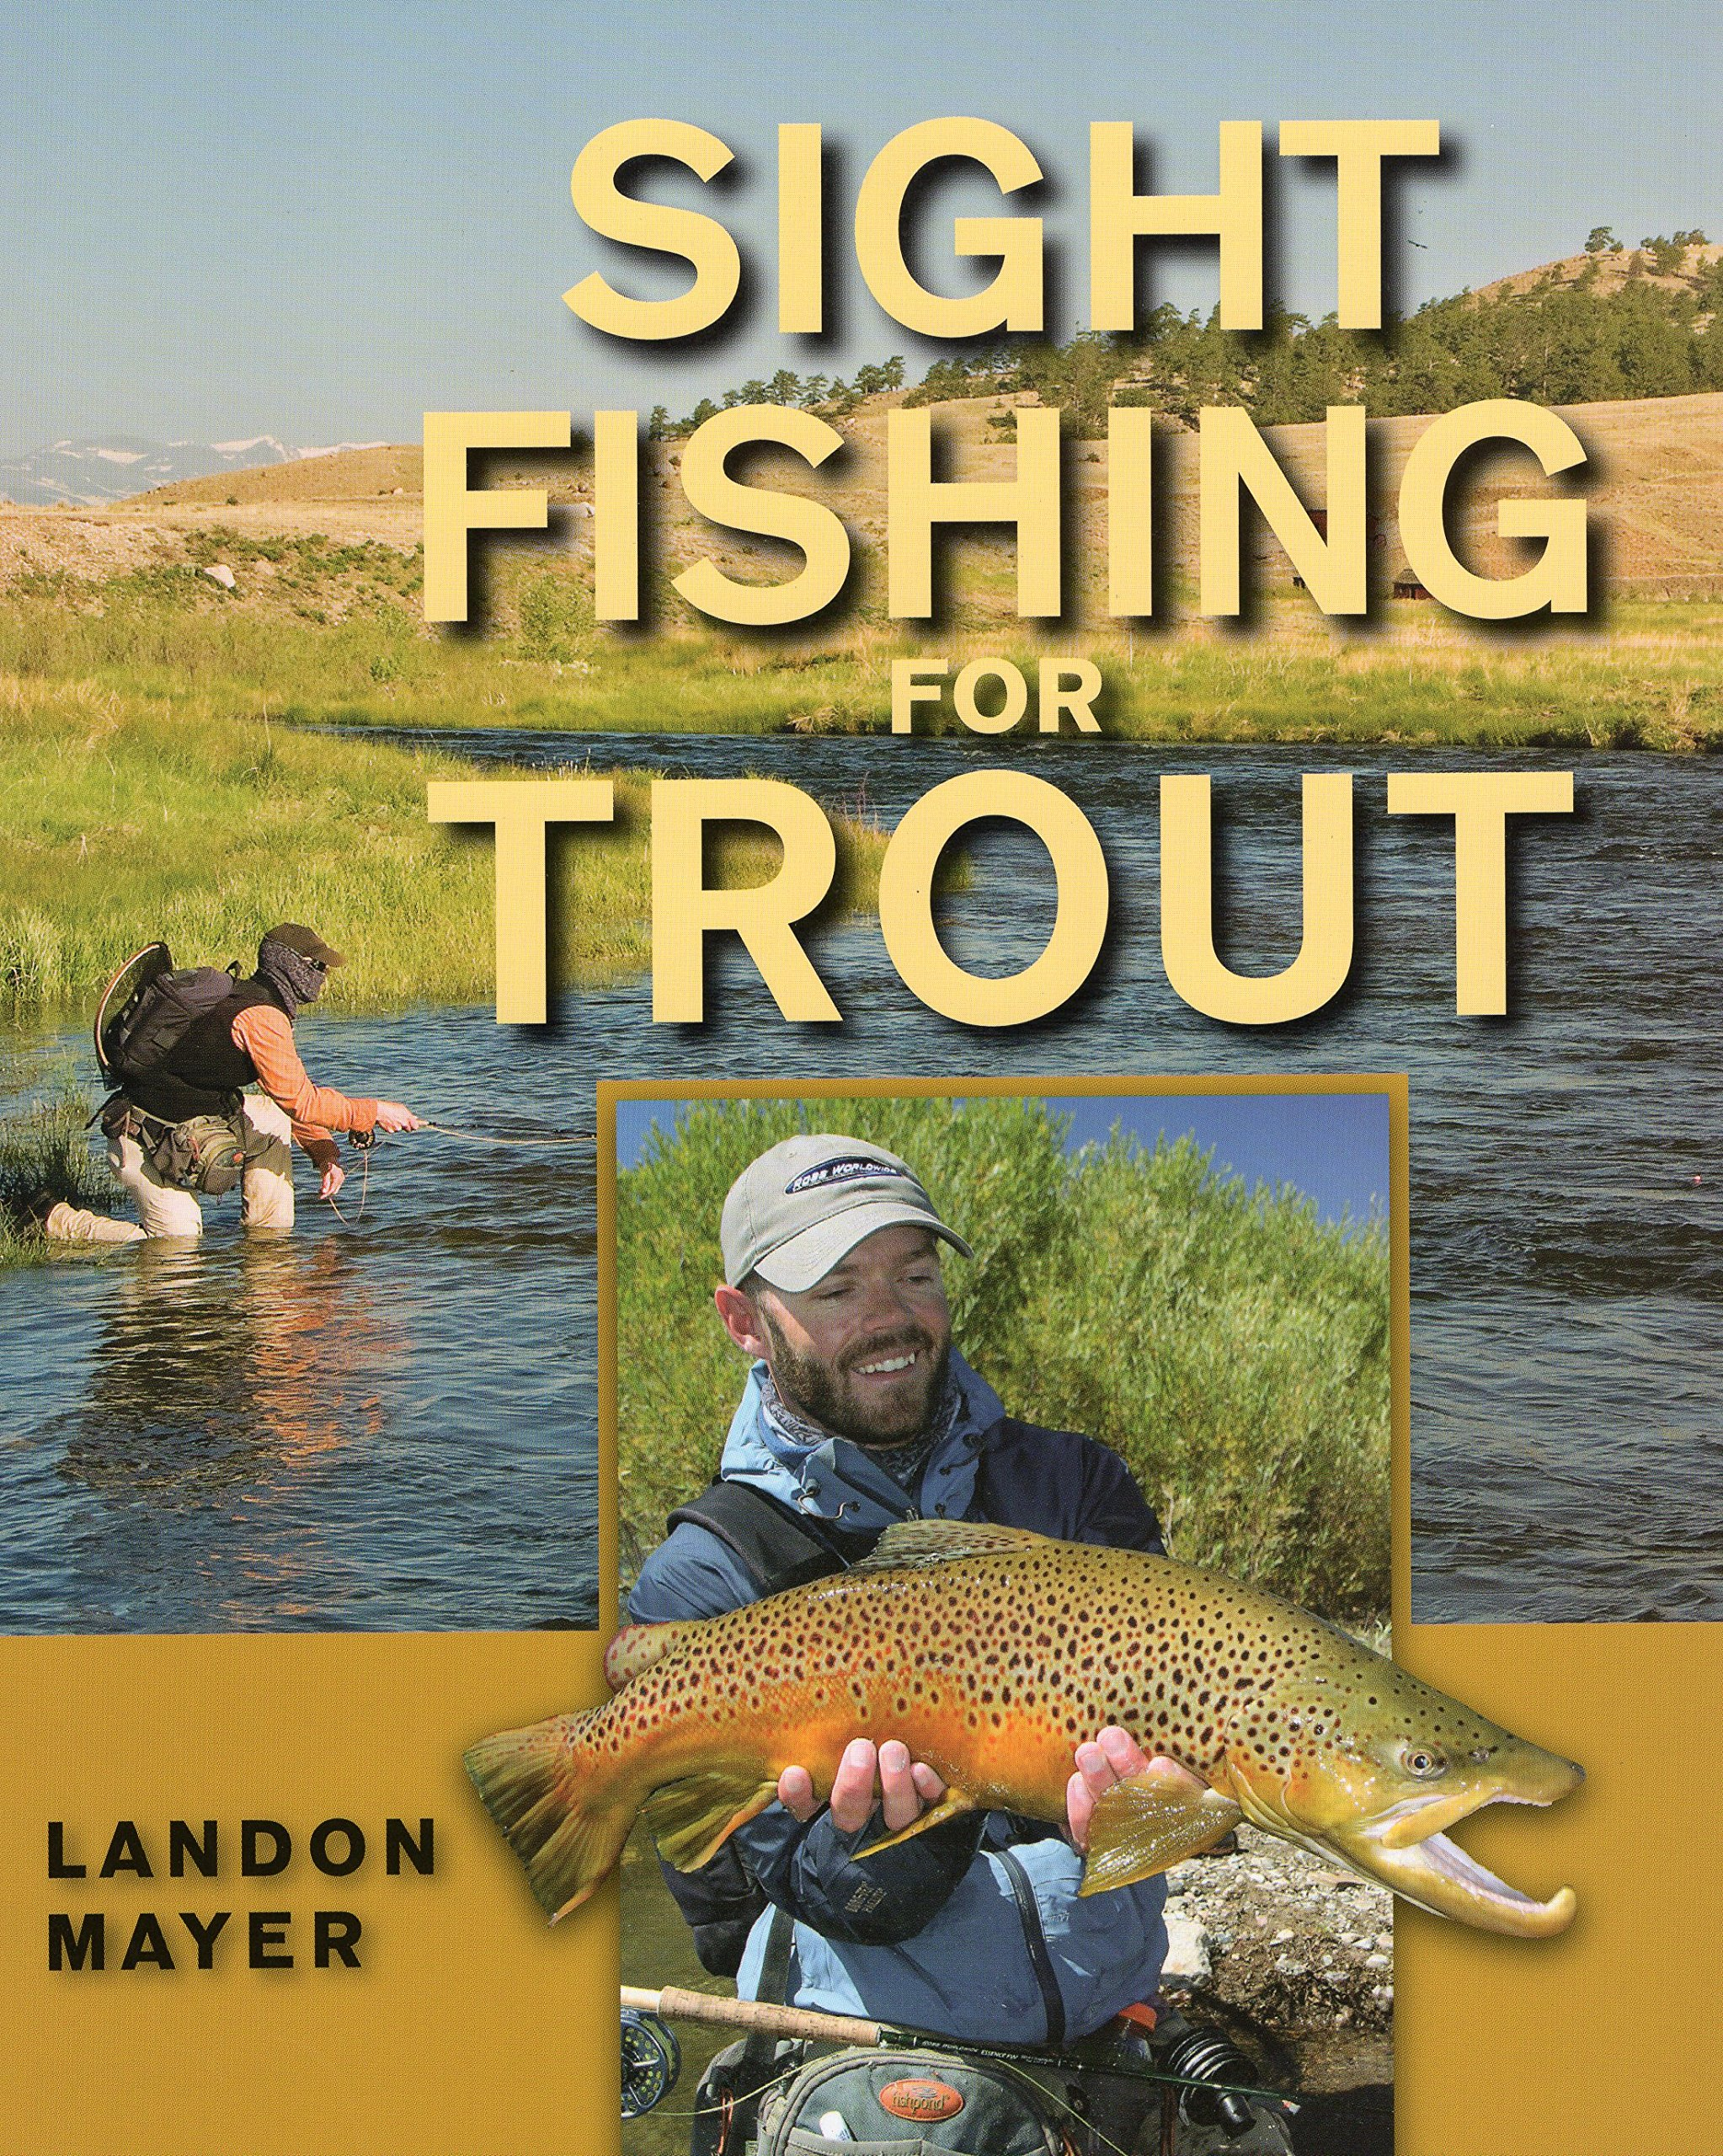 Sight Fishing Trout Landon Mayer product image